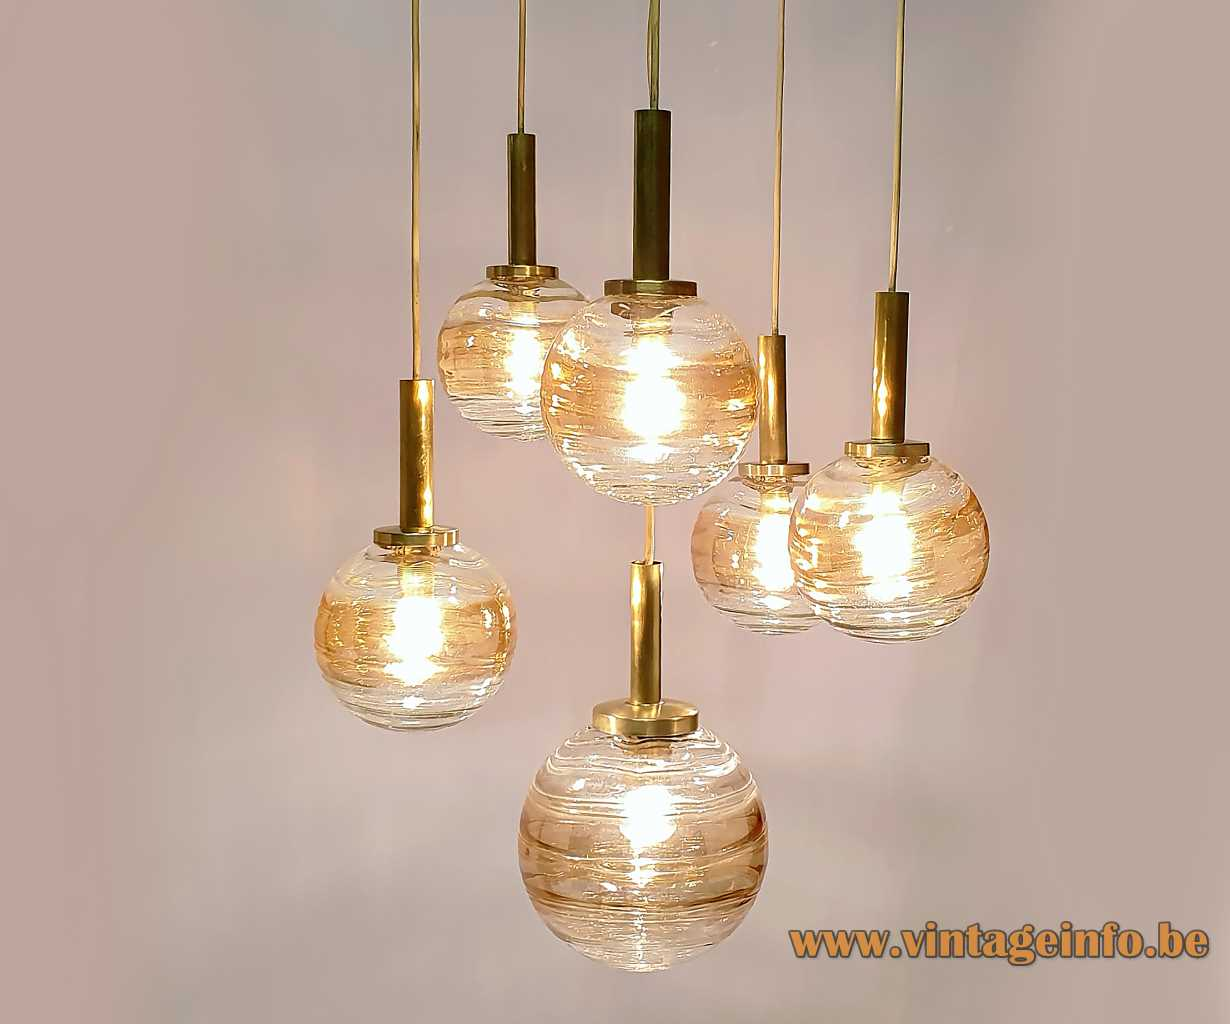 Wortmann globe pendant chandelier with six cascade hanging amber and clear glass lamps 1960s WOFI Leuchten